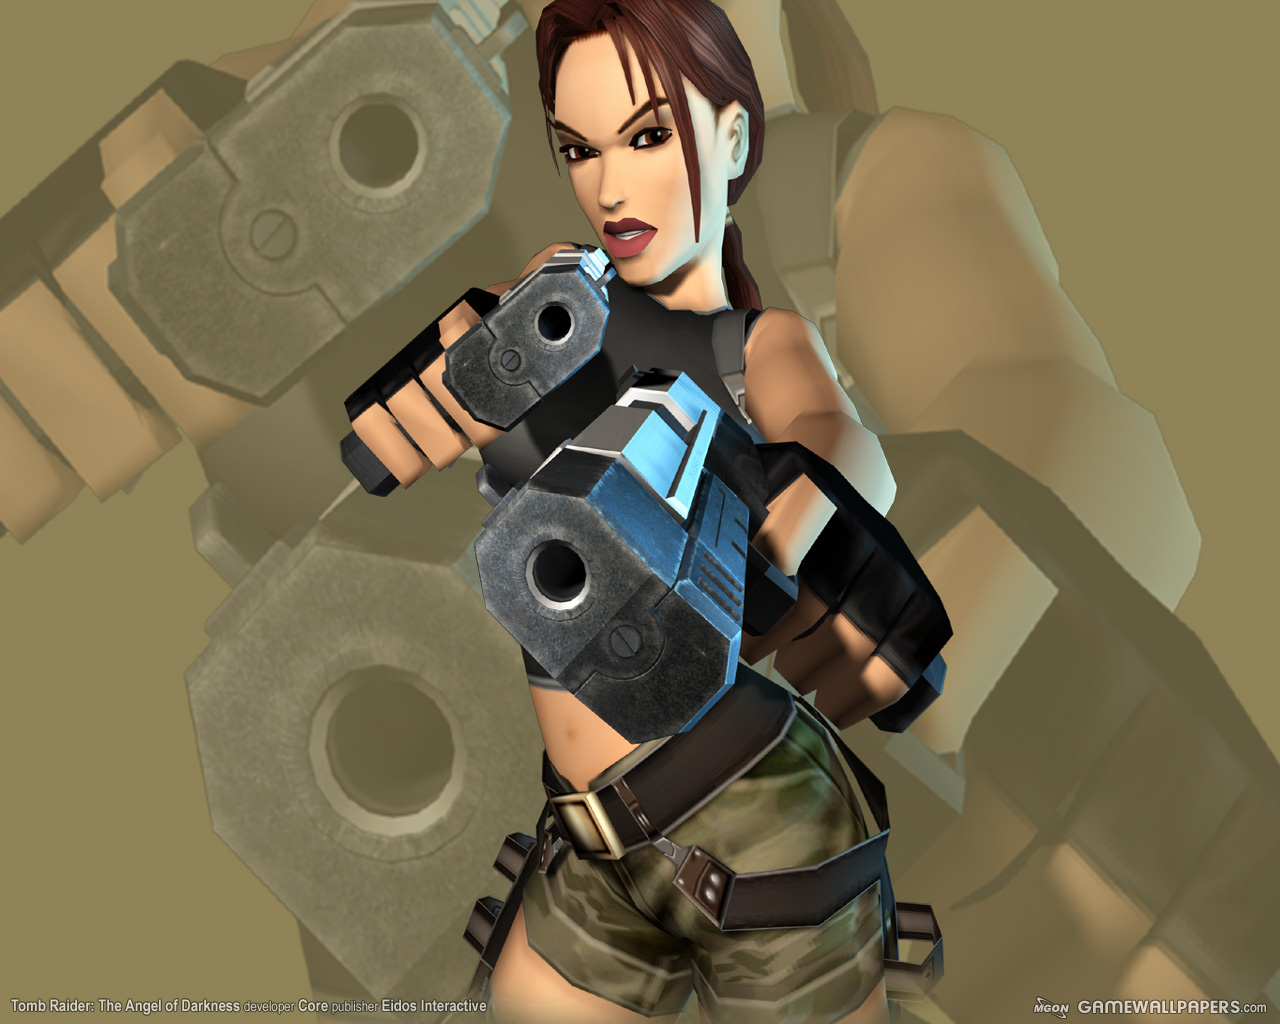 TOMB RAIDER NEXT GENERATION